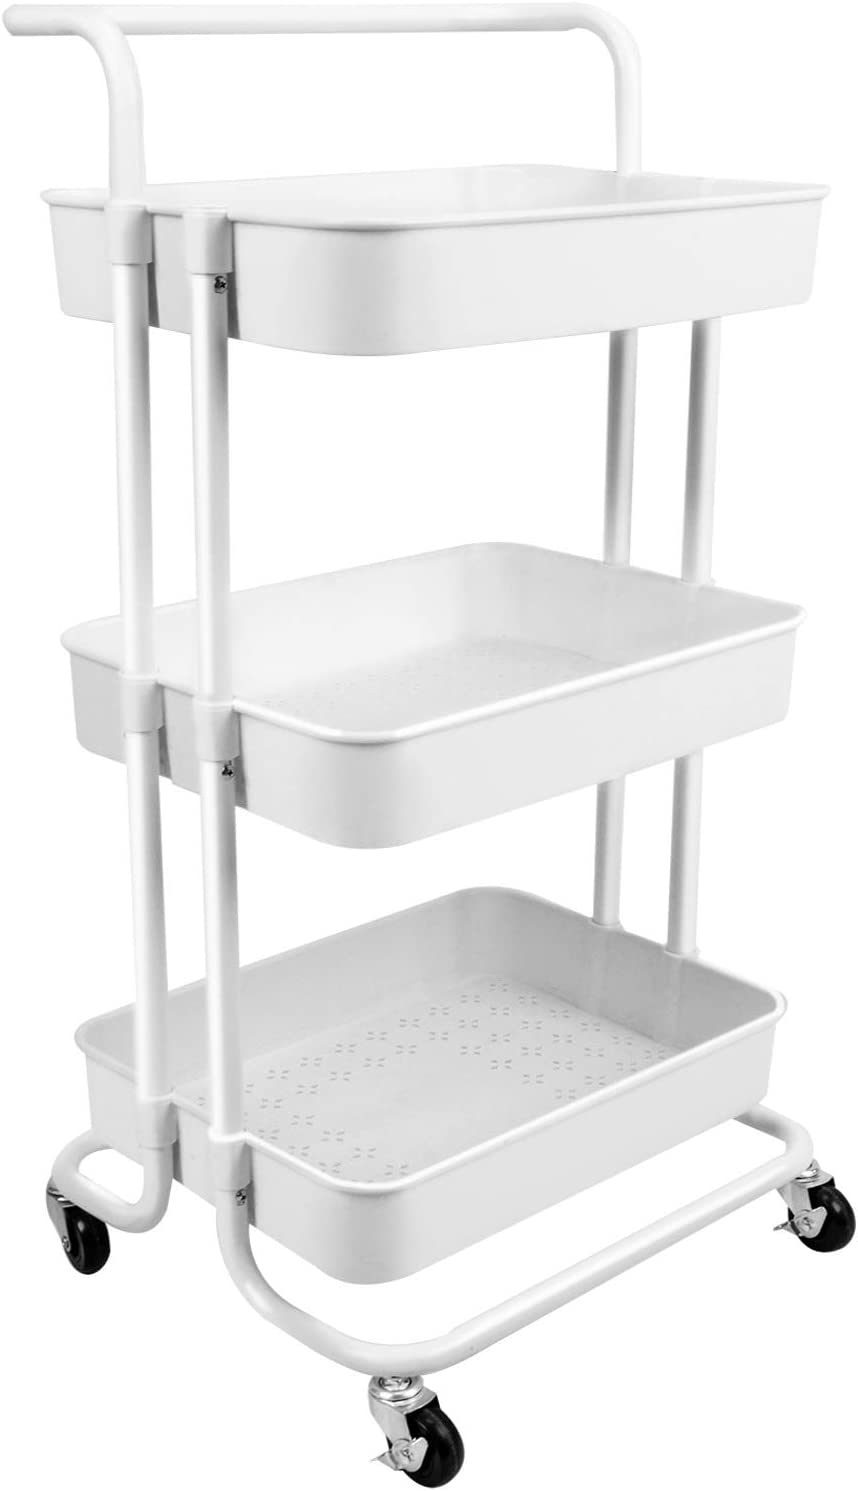 Voilamart 3 Tier Bathroom Animer and price revision Organizers Colorado Springs Mall Cart Utility Slim Rolling